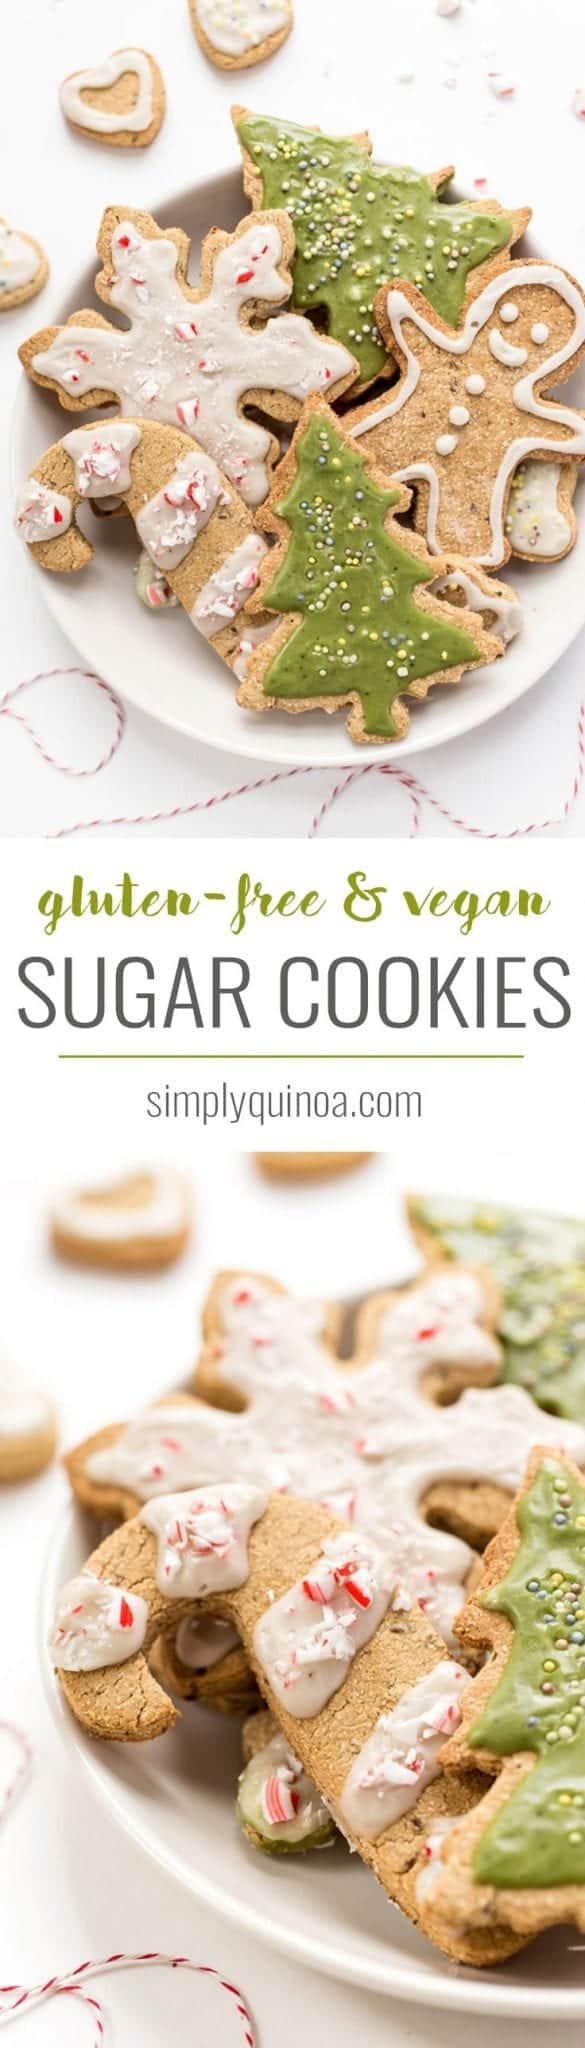 These GLUTEN-FREE & VEGAN Sugar Cookies are perfect for the holidays. Easy to make, healthy, nut-free and topped with a naturally colored green icing!